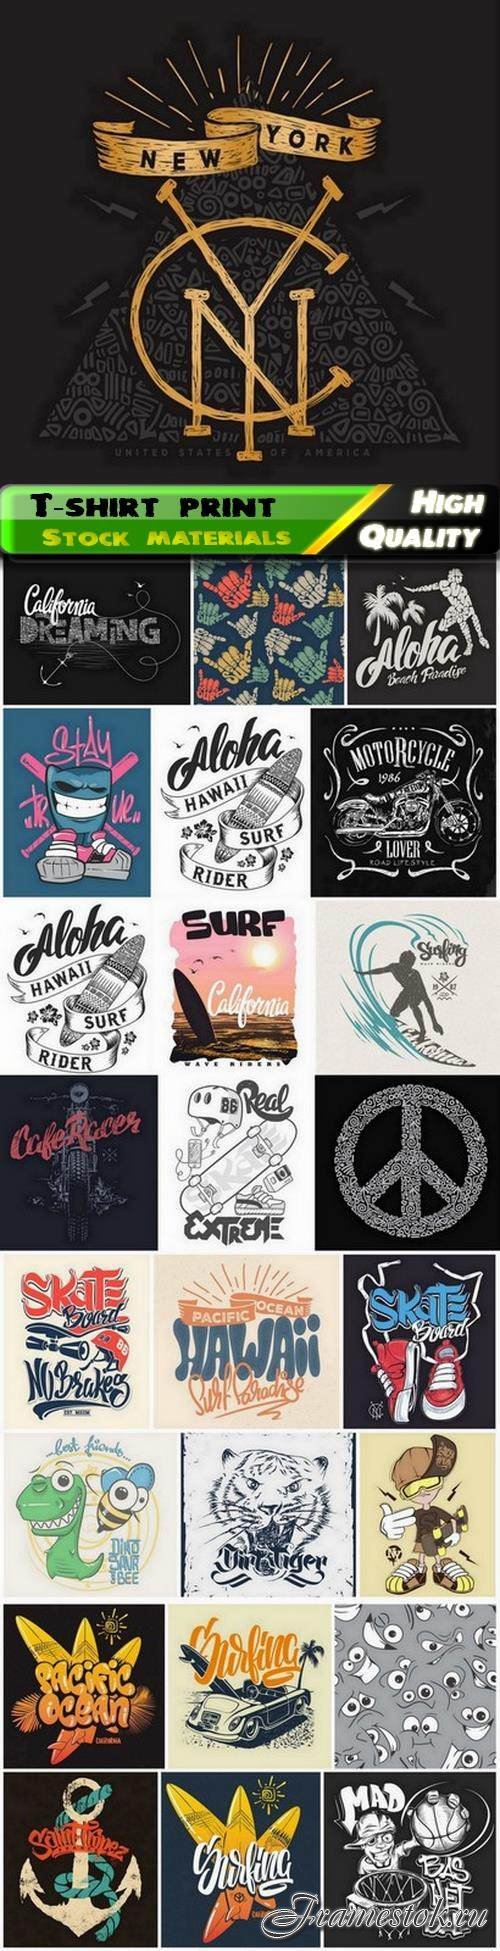 T-shirt print for clothes or fashion design creative art 15 25 Eps